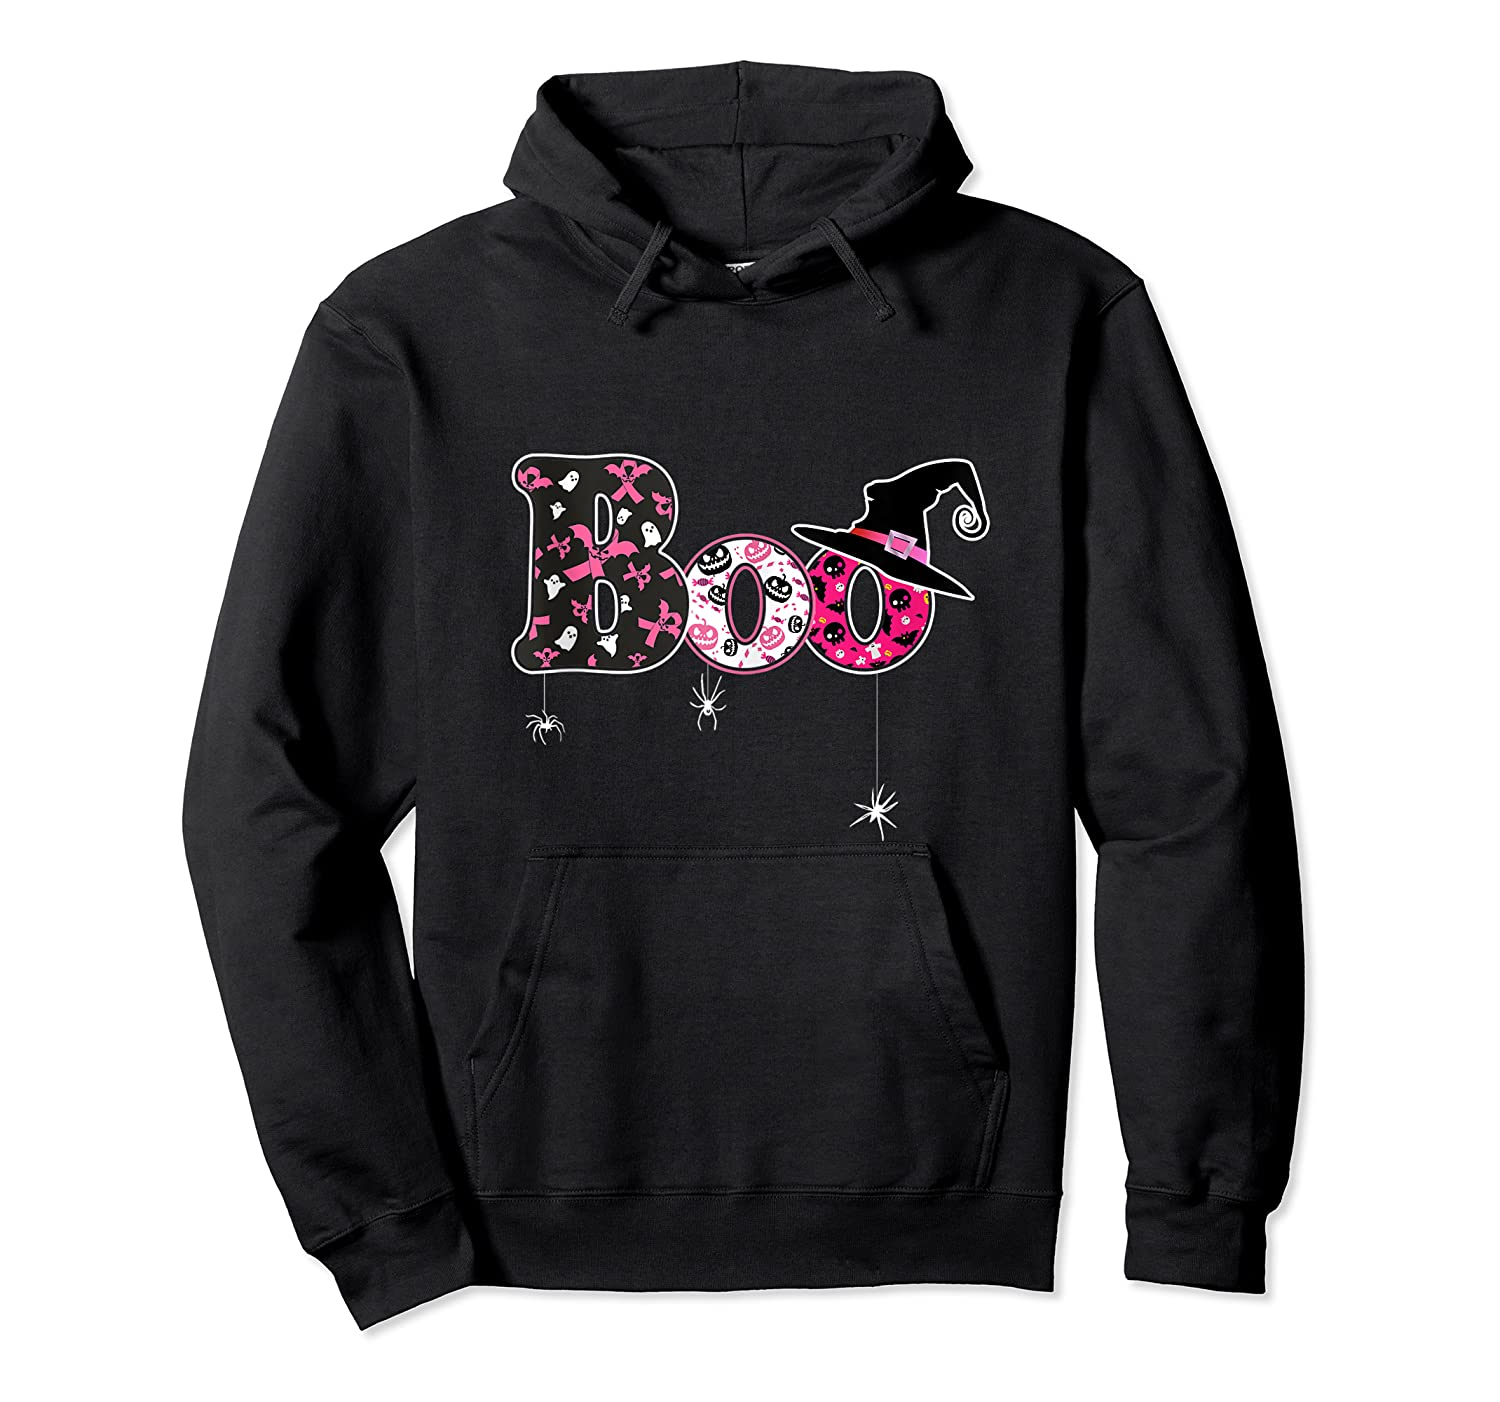 Halloween Boo Breast Cancer Awareness Month Tank Top Shirts Unisex Pullover Hoodie